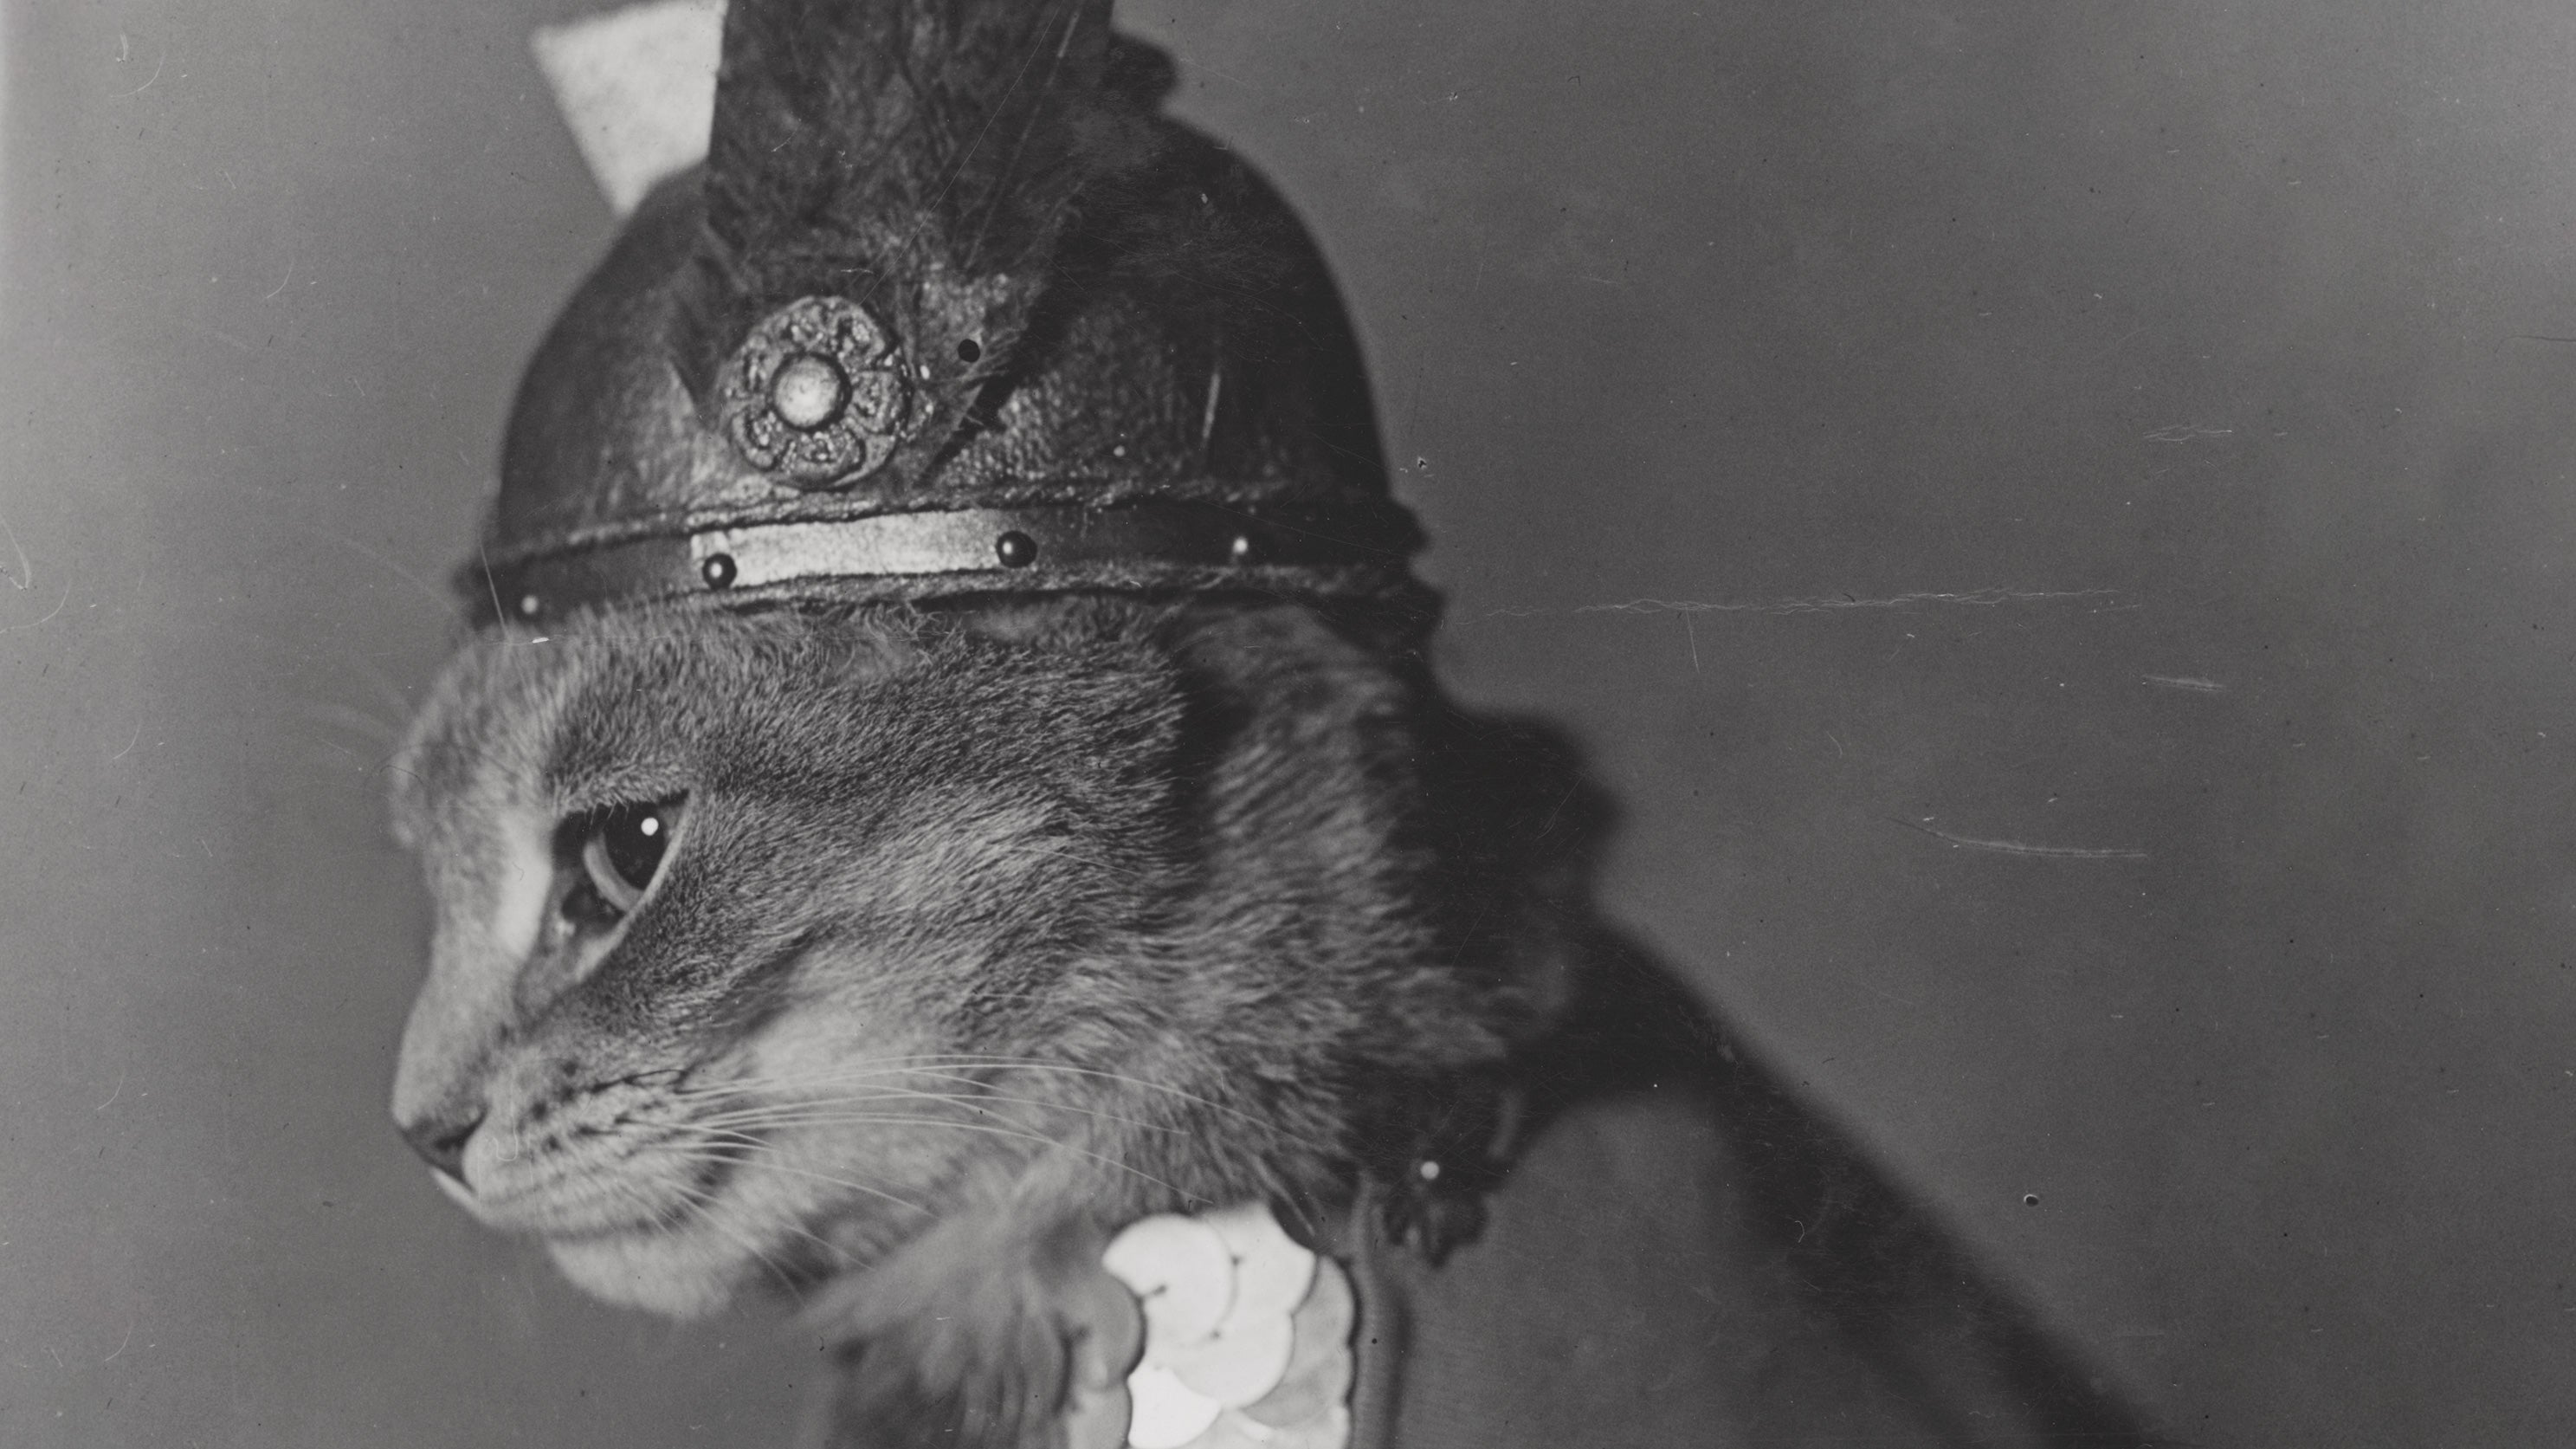 Ogle These Vintage Public-Domain Cat Pictures From The US Library Of Congress